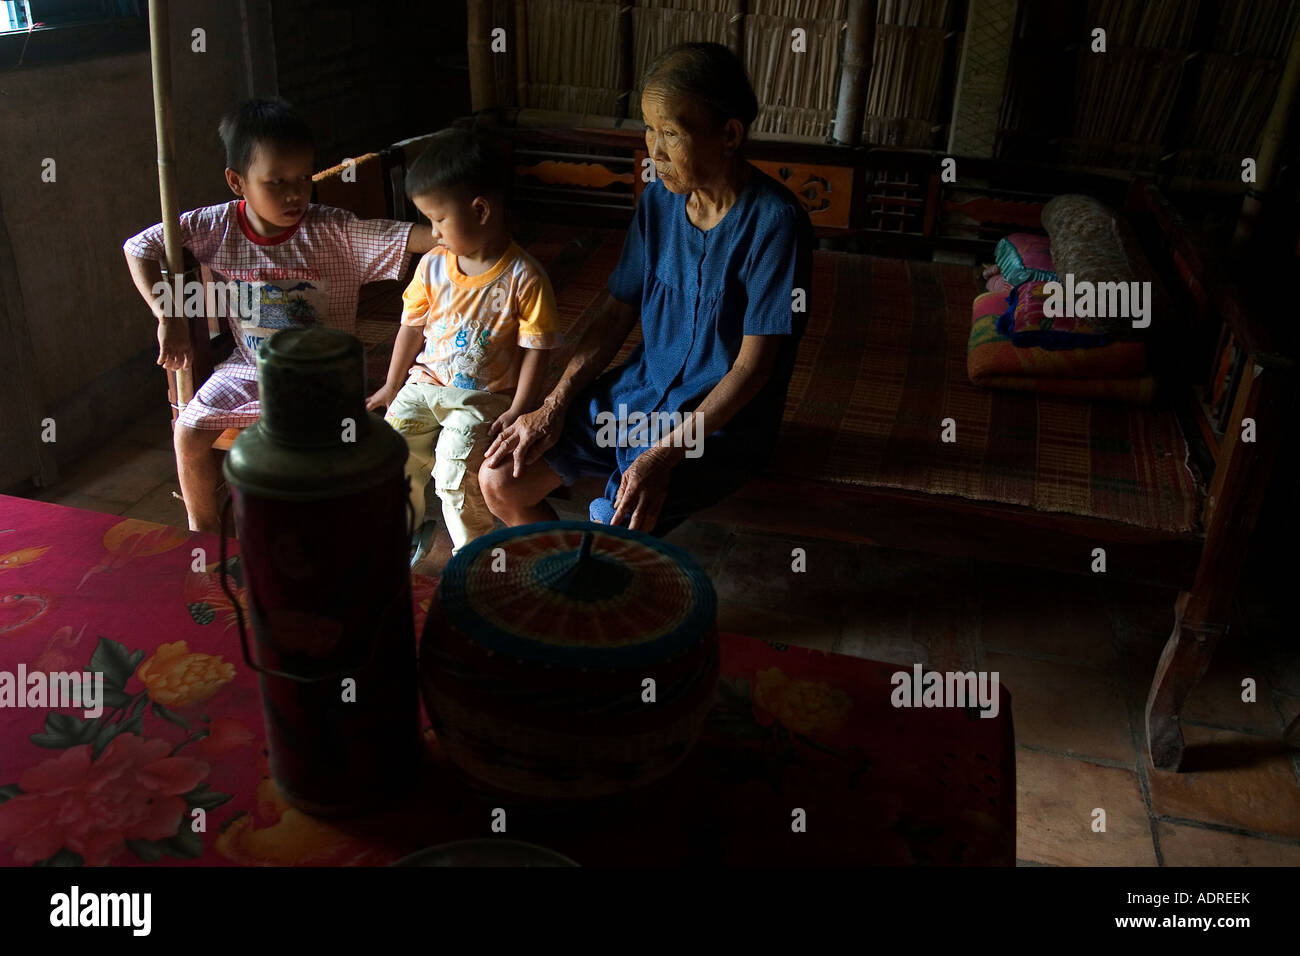 HIV Children Nug Yen 8 and his brother Nug Yen Quoc Viet 4 with their grandmother. - Stock Image